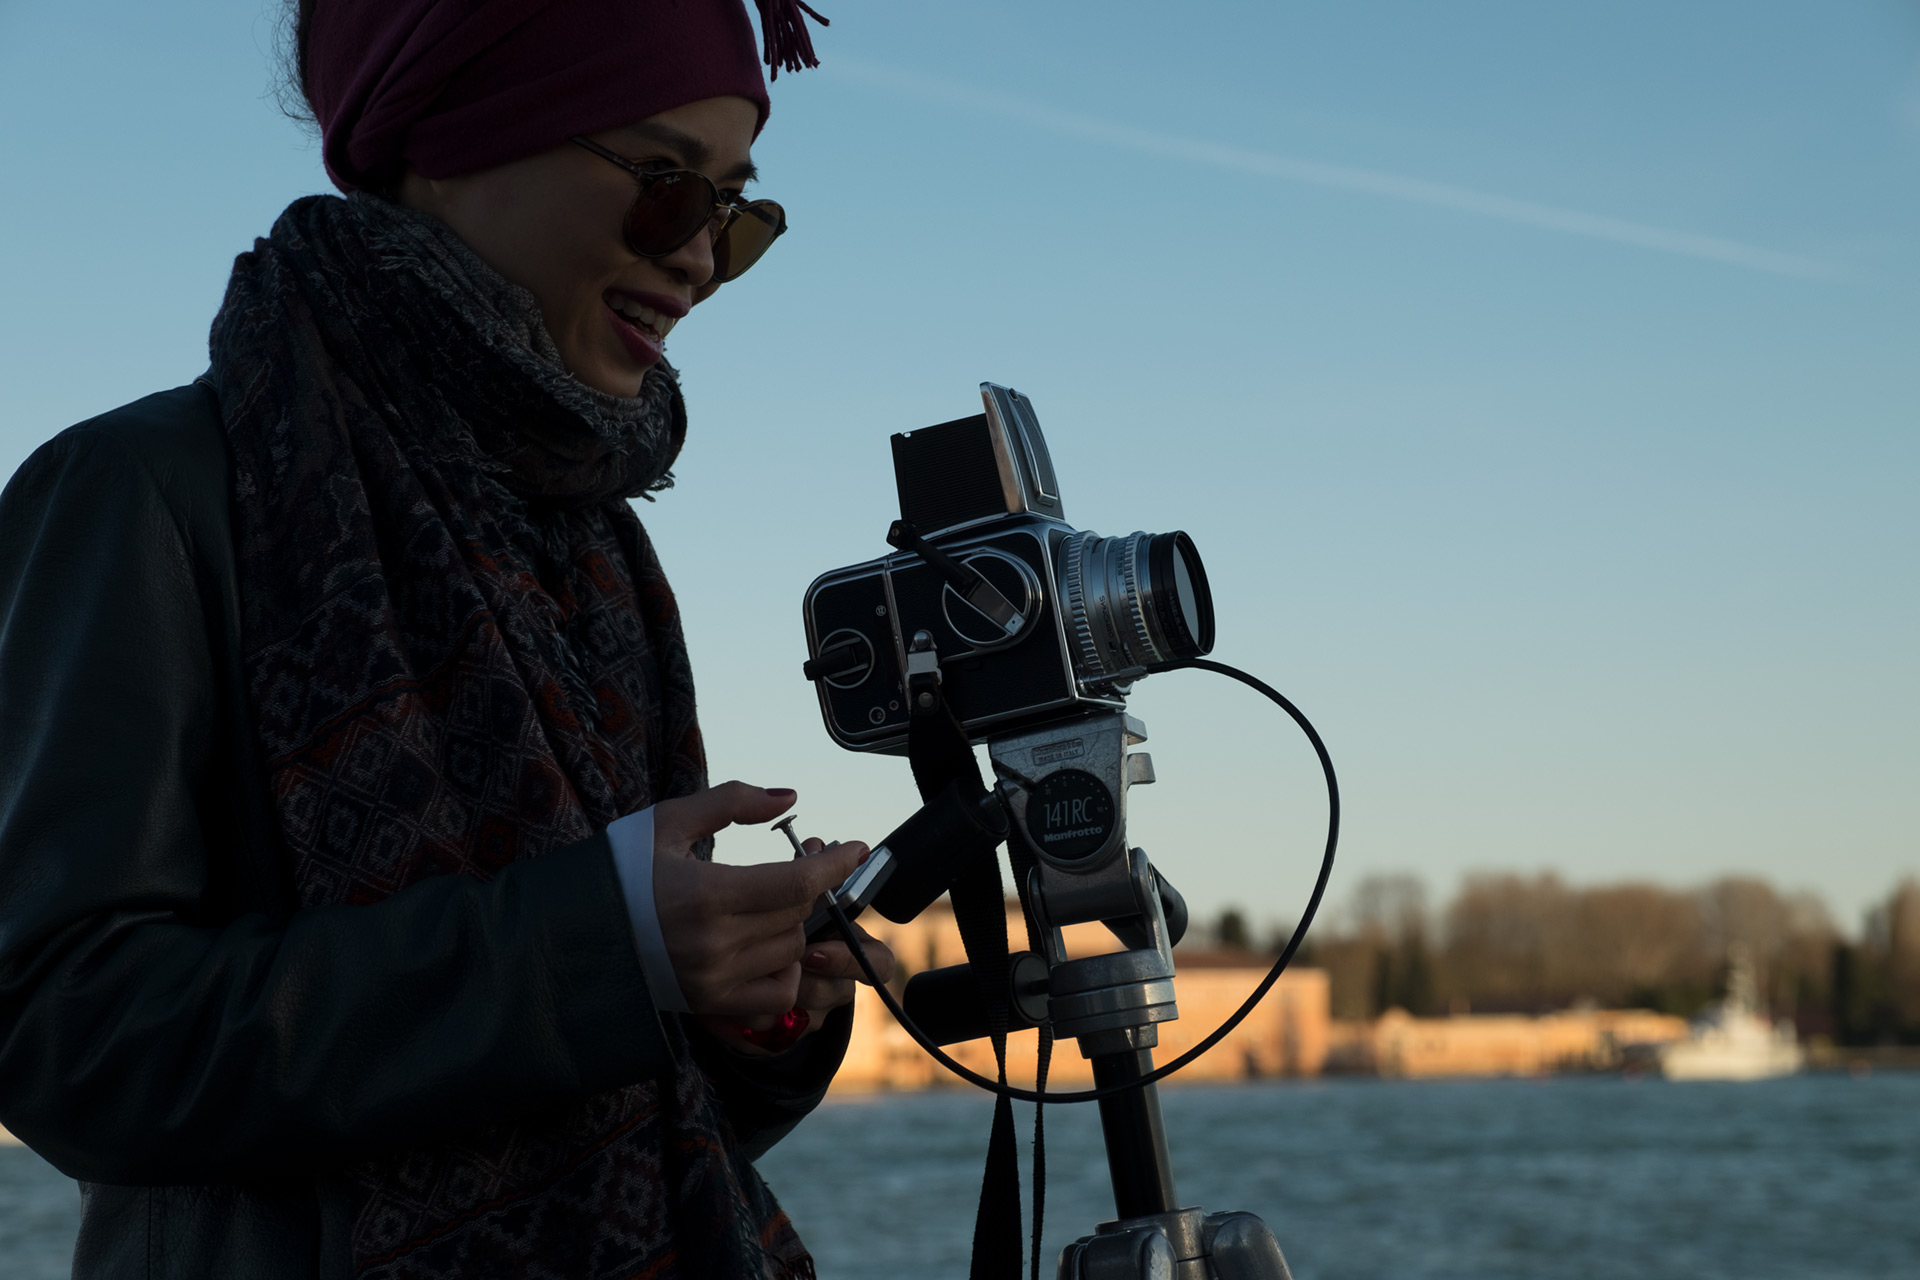 The Decisive Hasselblad - Venice Carnival Venice Travel Show the Original Photography Workshop Photography Photo Tour Capture One - the decisive hasselblad o